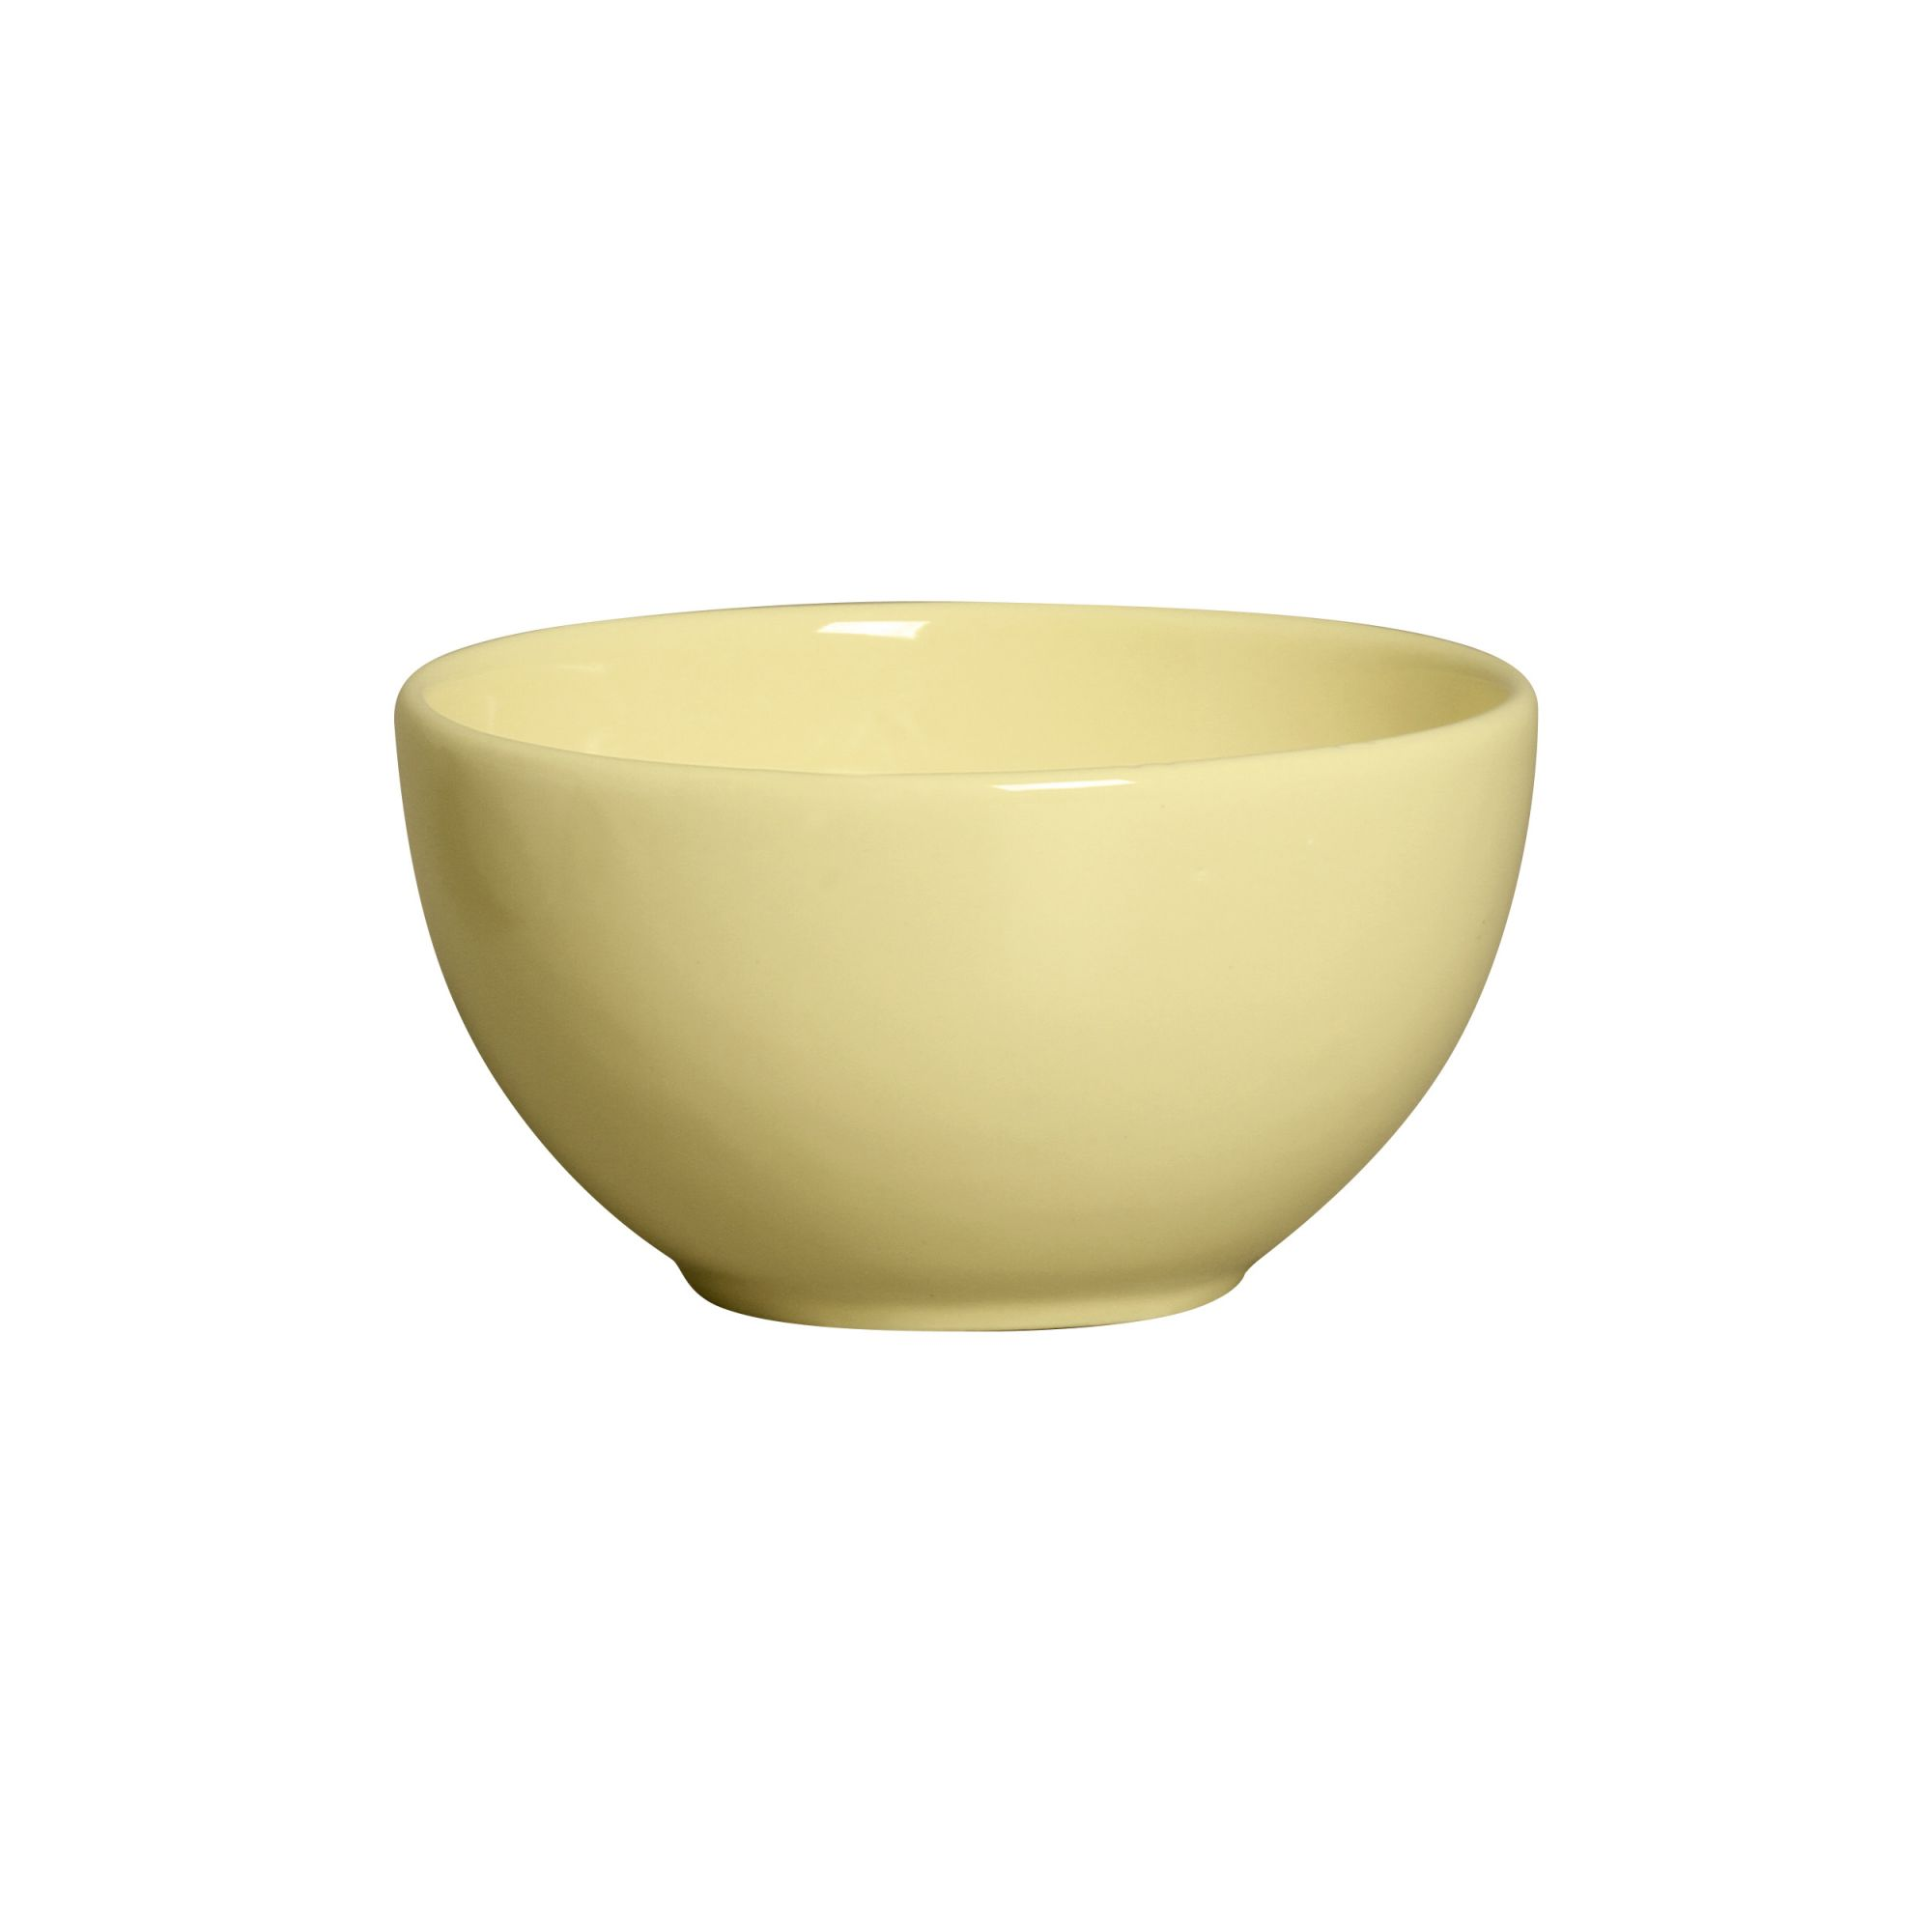 Bowl Slim - Un. -  400ml